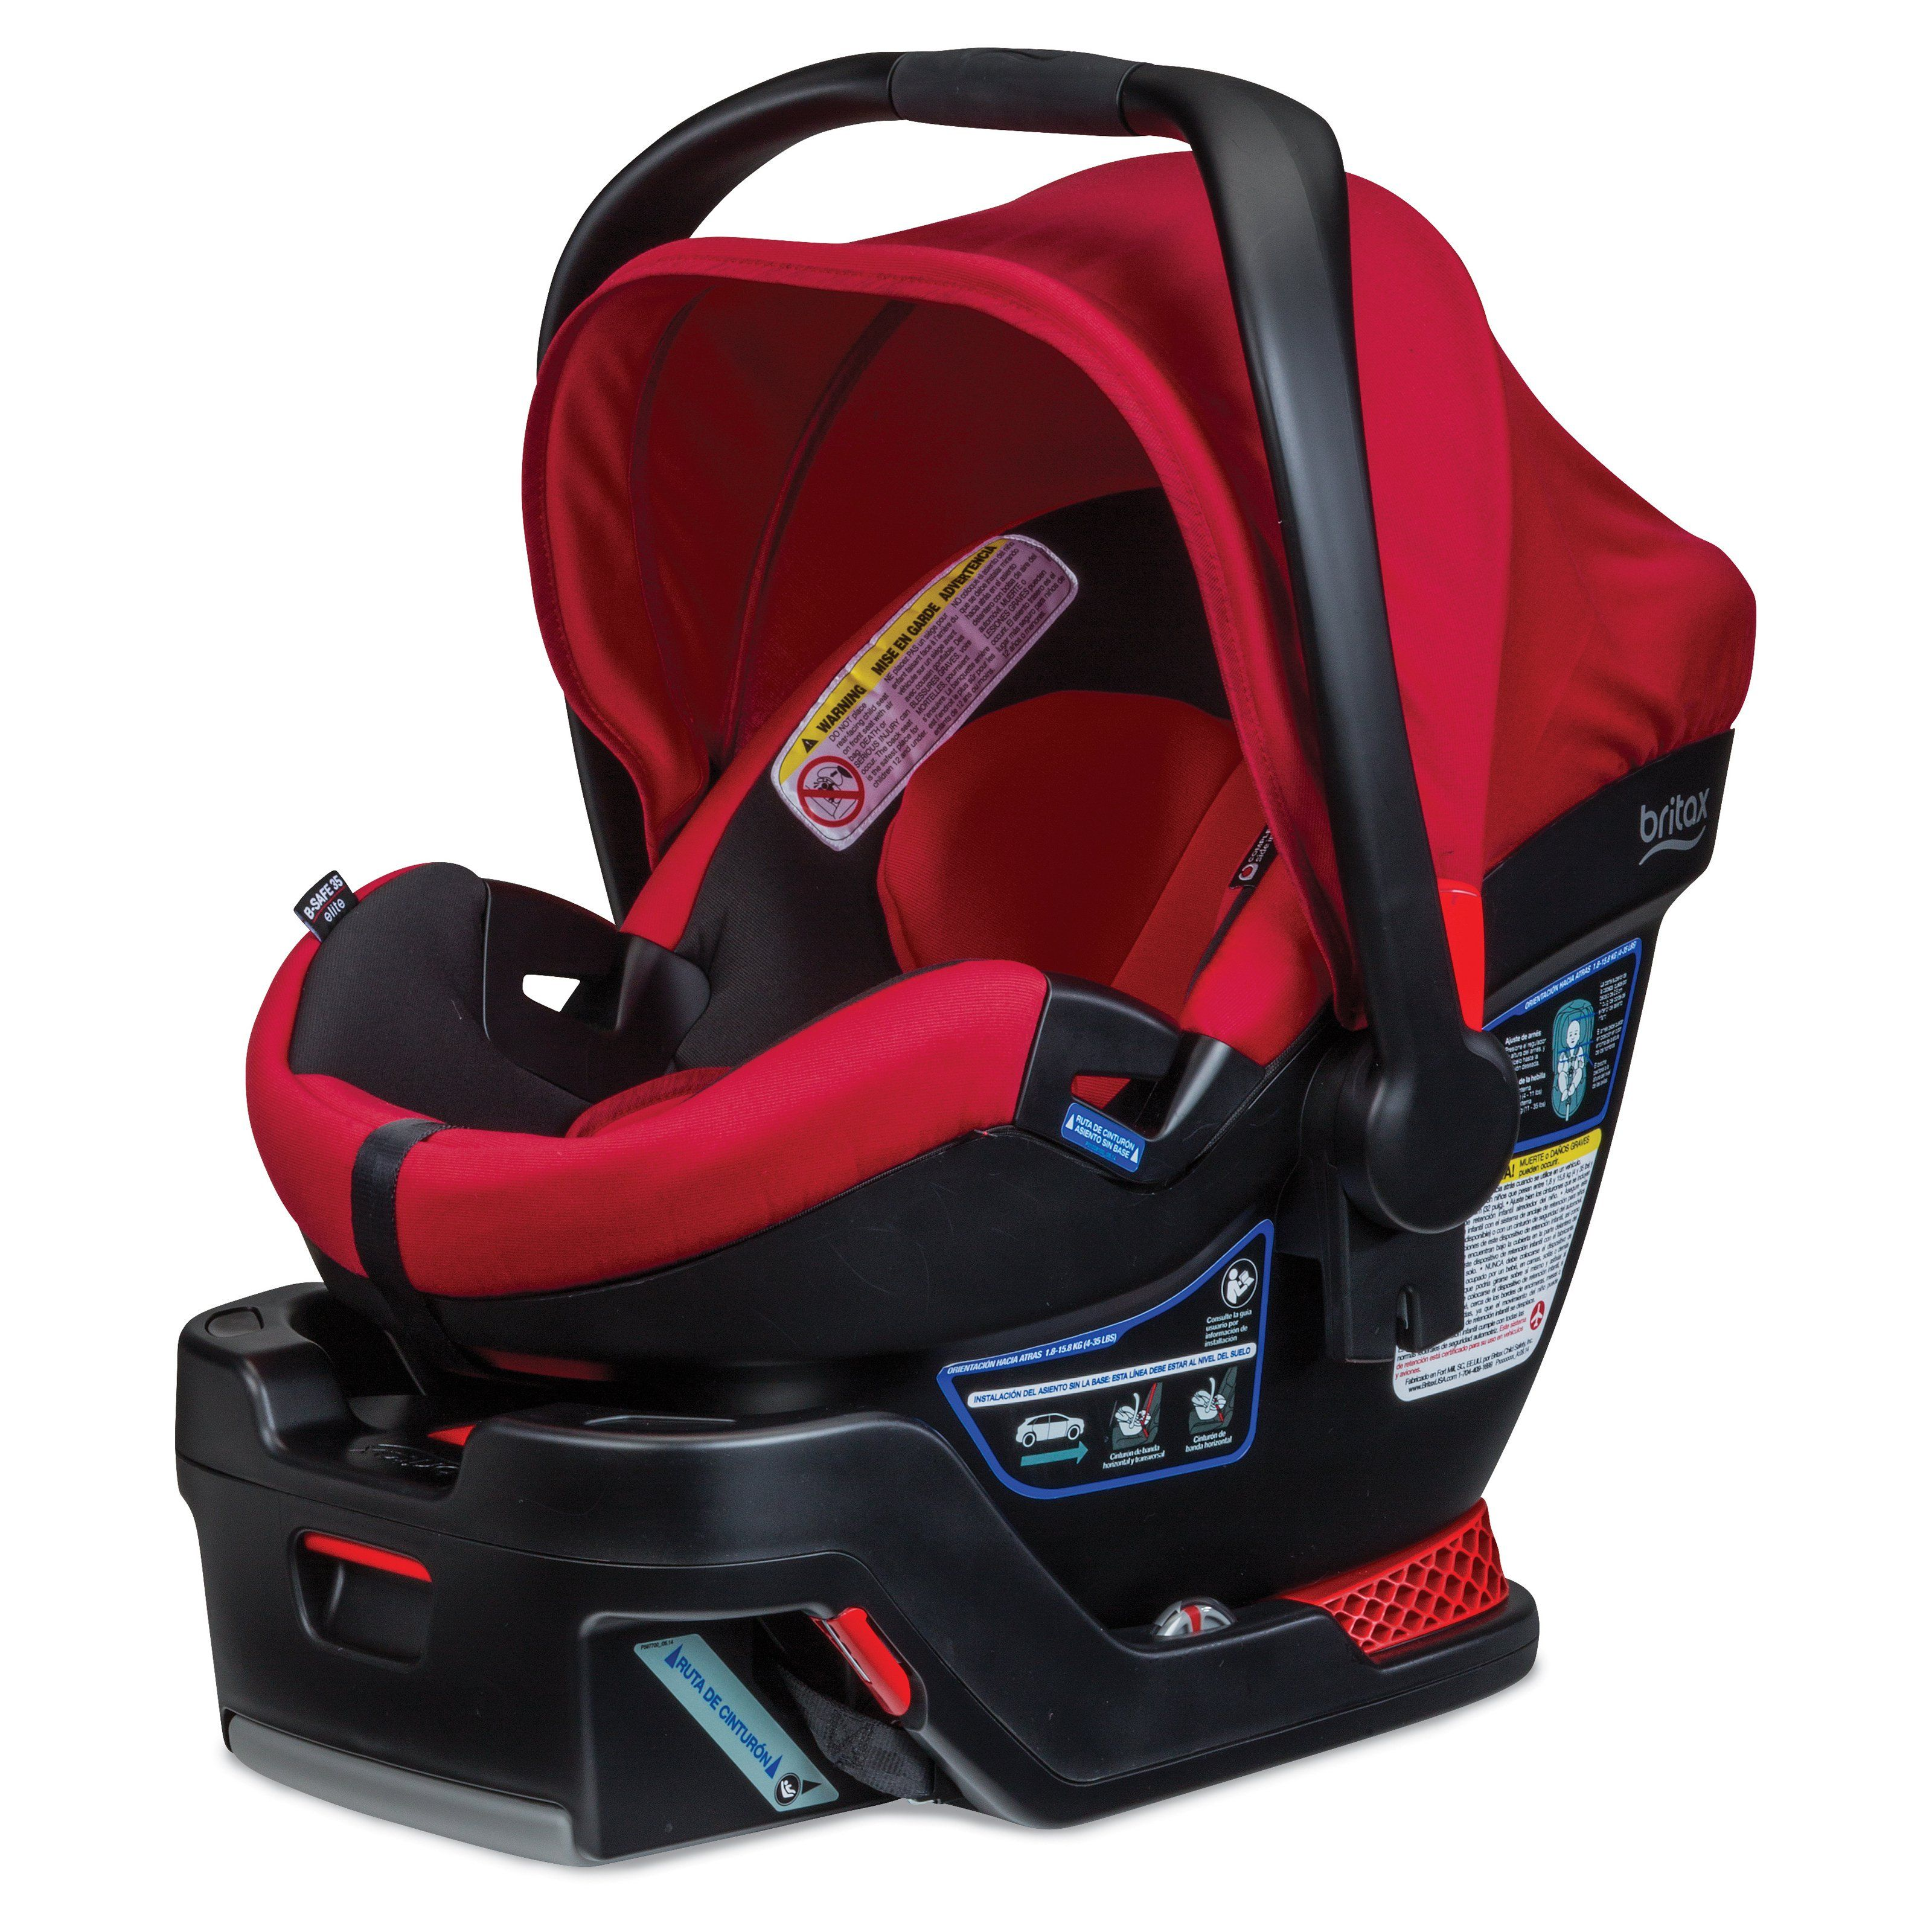 Britax BSafe 35 Elite Infant Car Seat from hayneedle